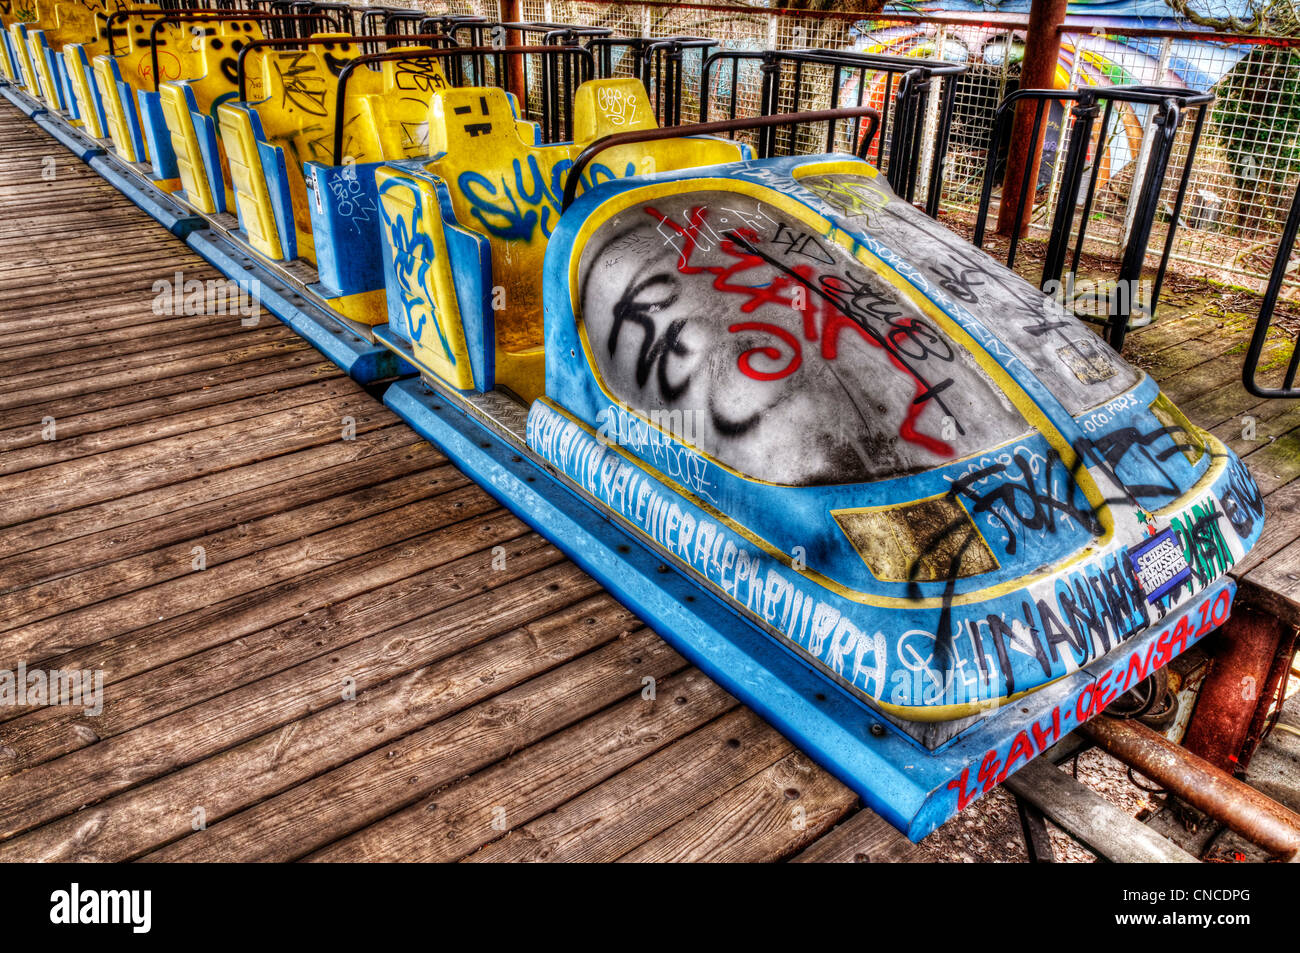 an-abandoned-roller-coaster-train-in-the-funfair-in-treptower-park-CNCDPG.jpg